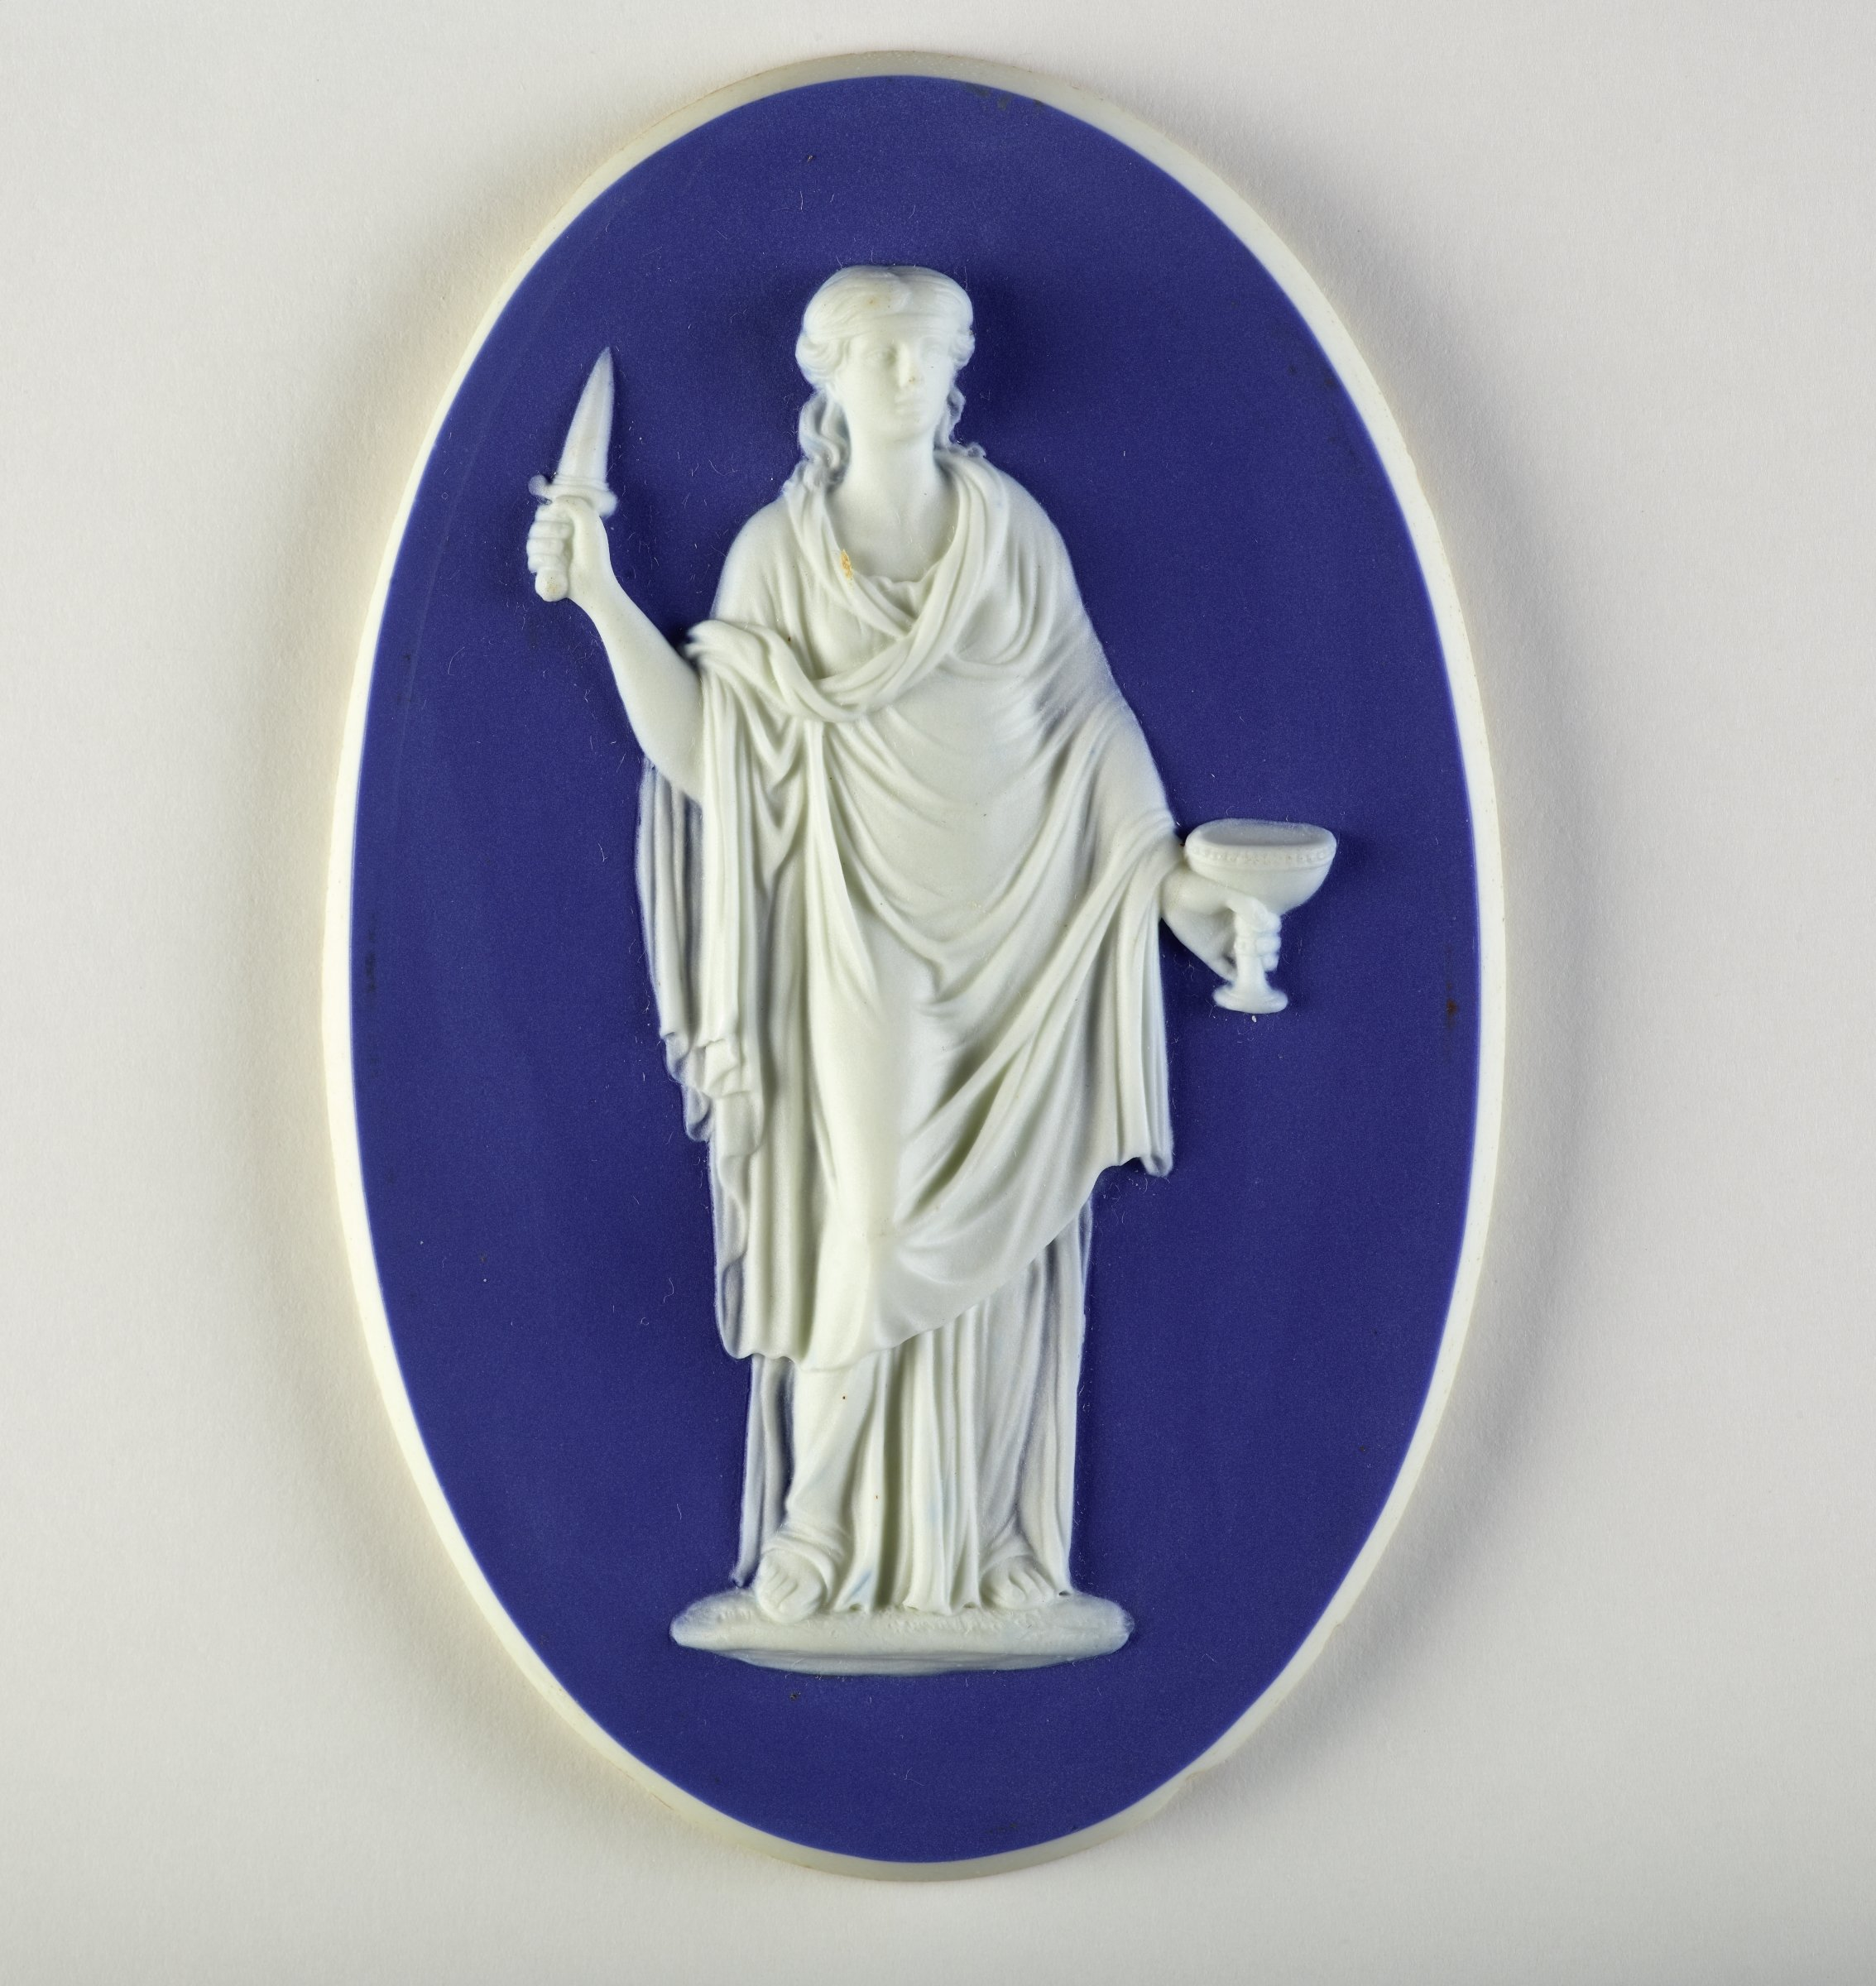 Oval medallion of white jasper with dark blue jasper dip and in white relief the figure of the Muse of Tragedy Melpomene classically dressed and with dagger and cup.